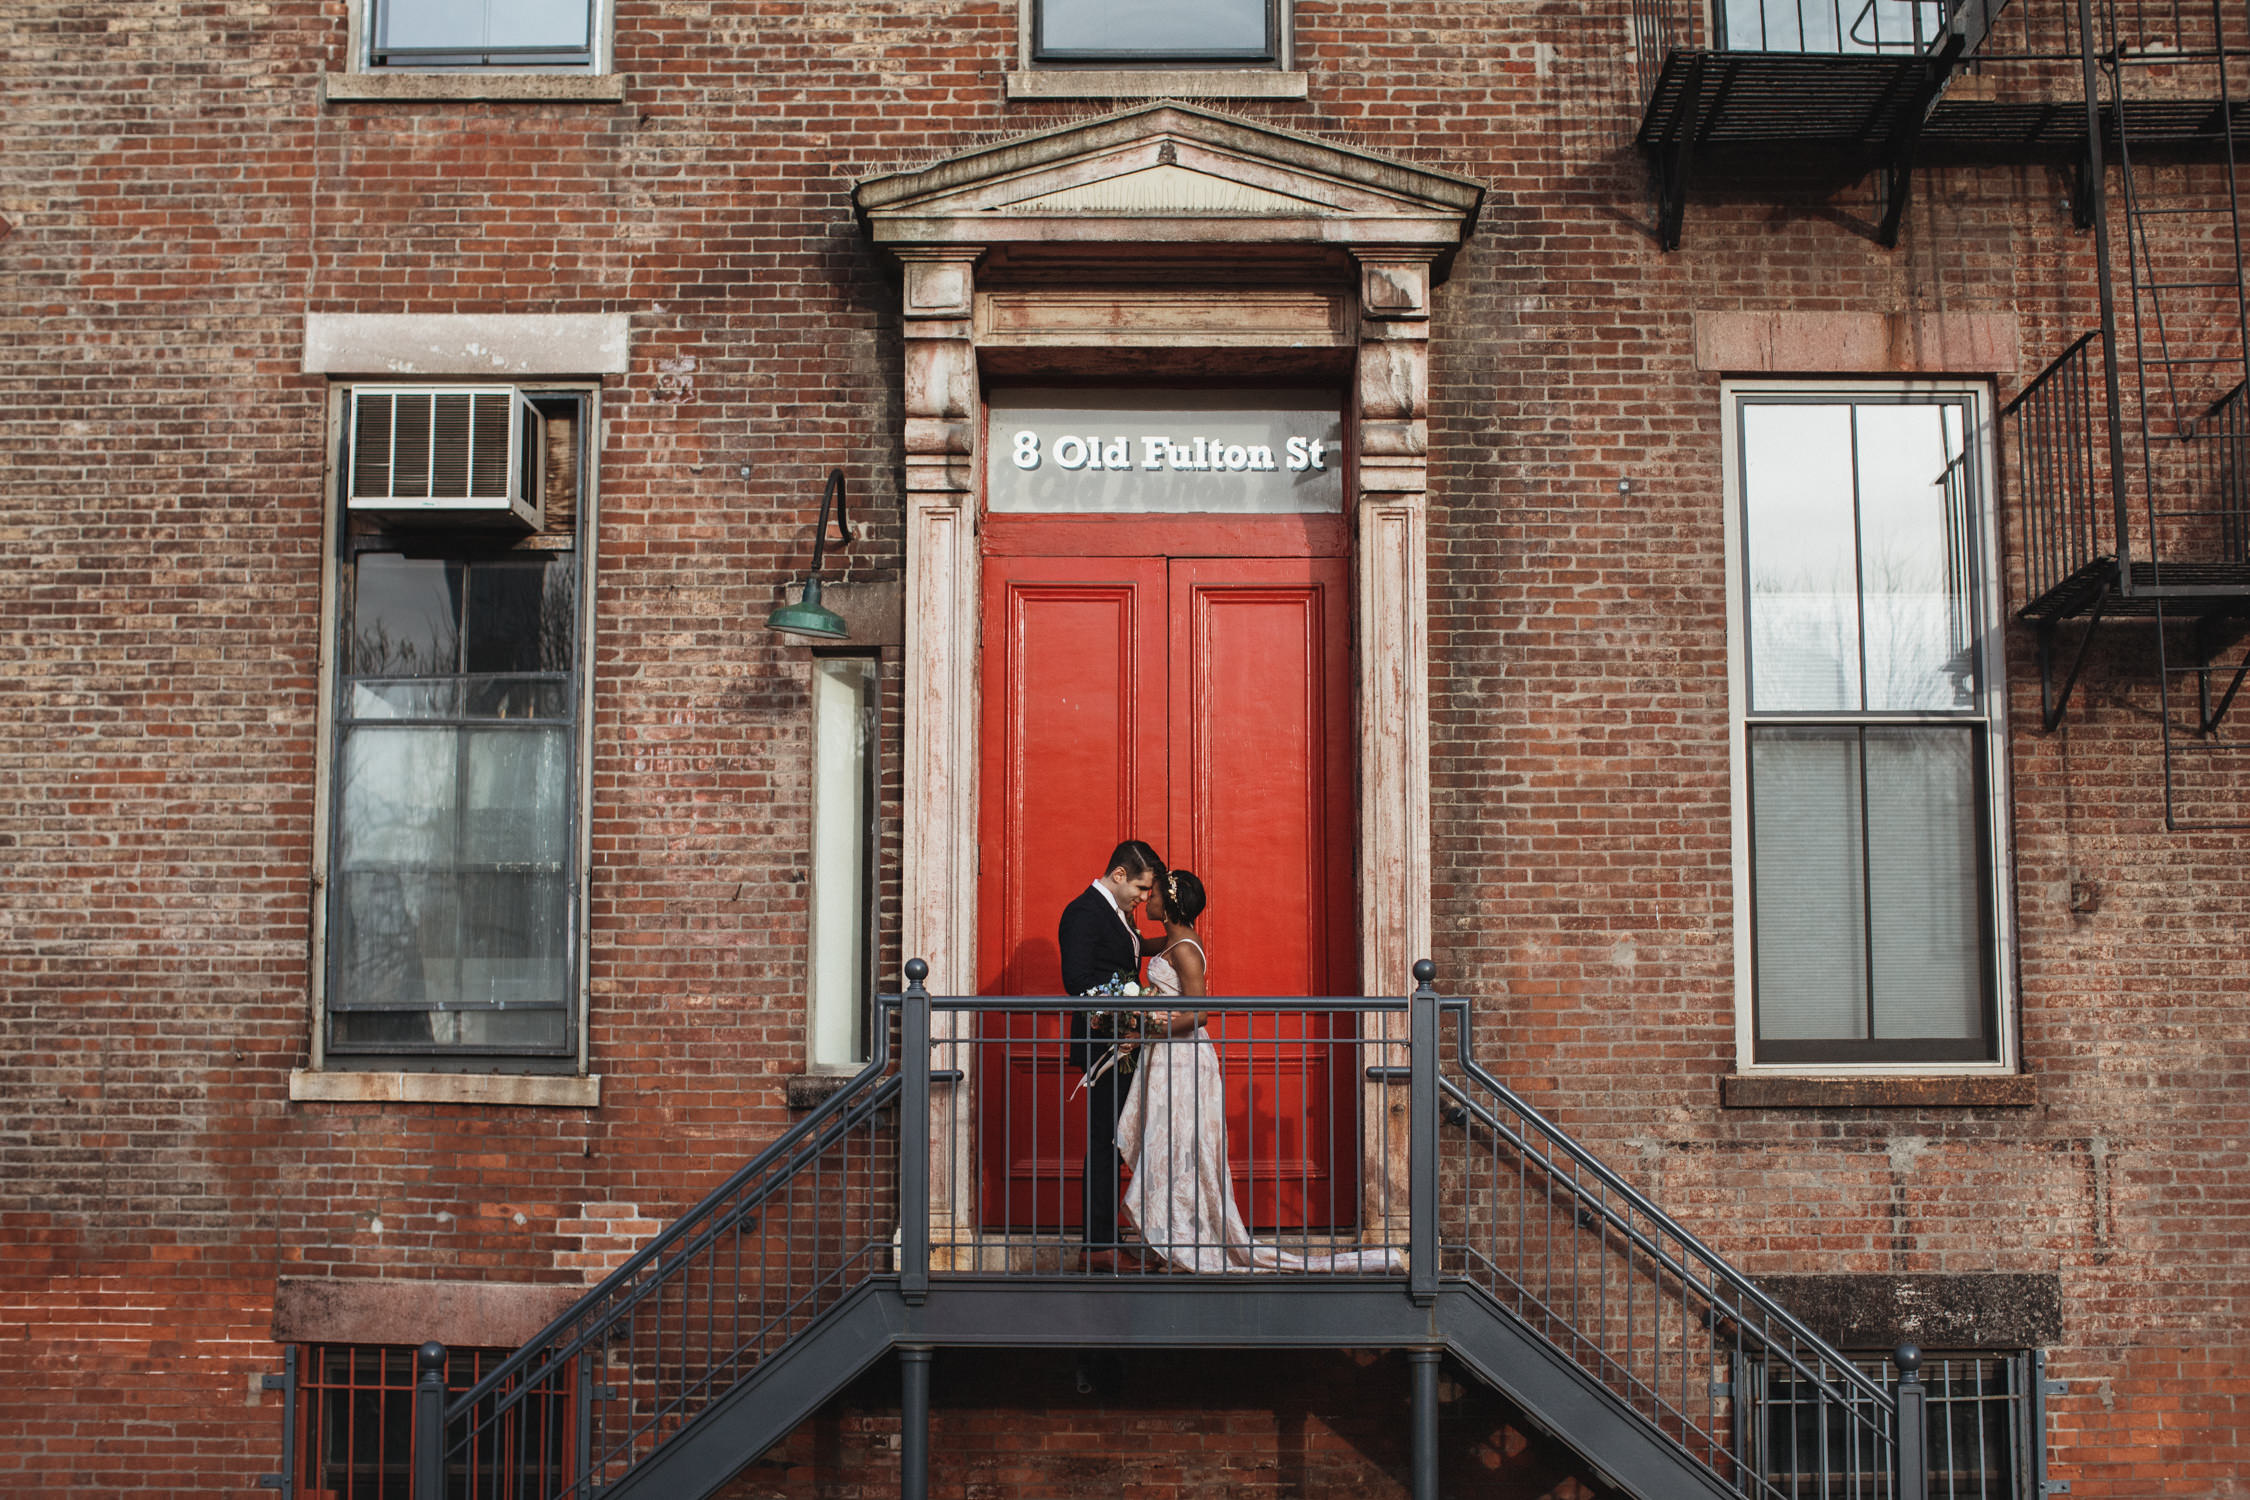 Wedding couple pose by a red door for wedding photos in DUMBO Brooklyn